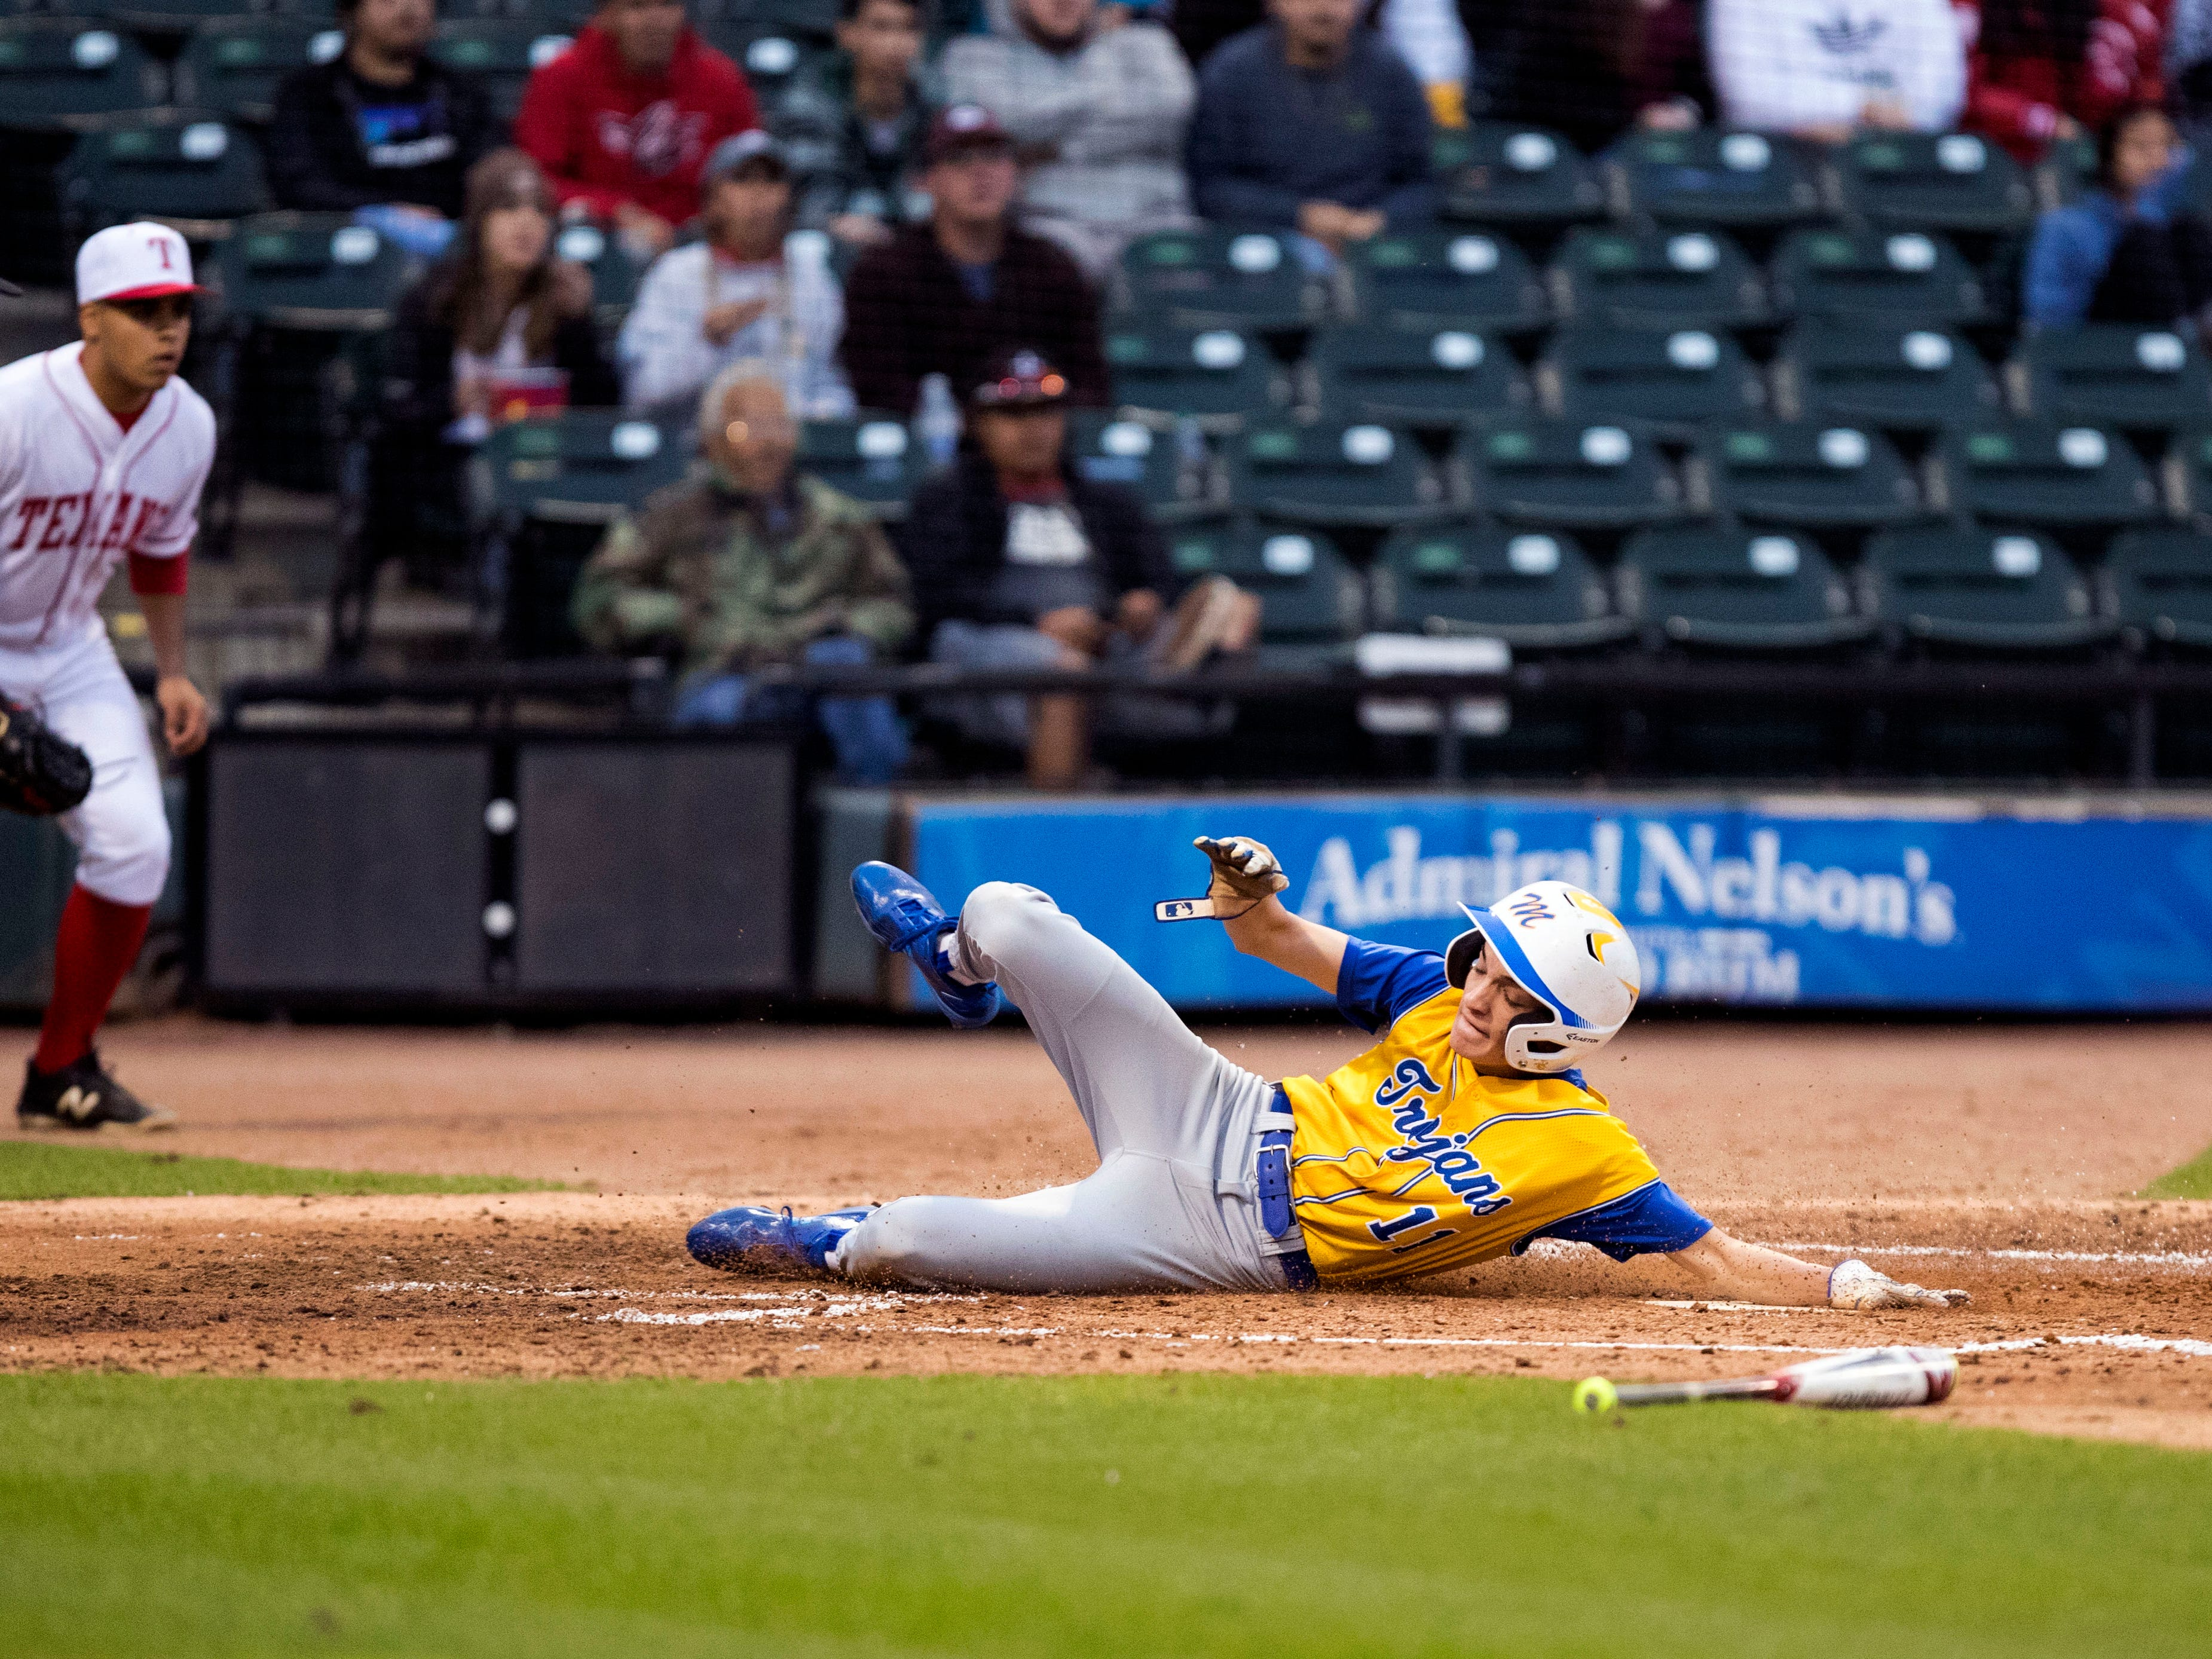 Moody Trojans' Tim Escamilla scores in the second inning of the game against the Ray Texans at Whataburger Field on Monday, February 18, 2019. Moody scored seven runs in the second inning and held onto the lead to beat Ray 7-3.